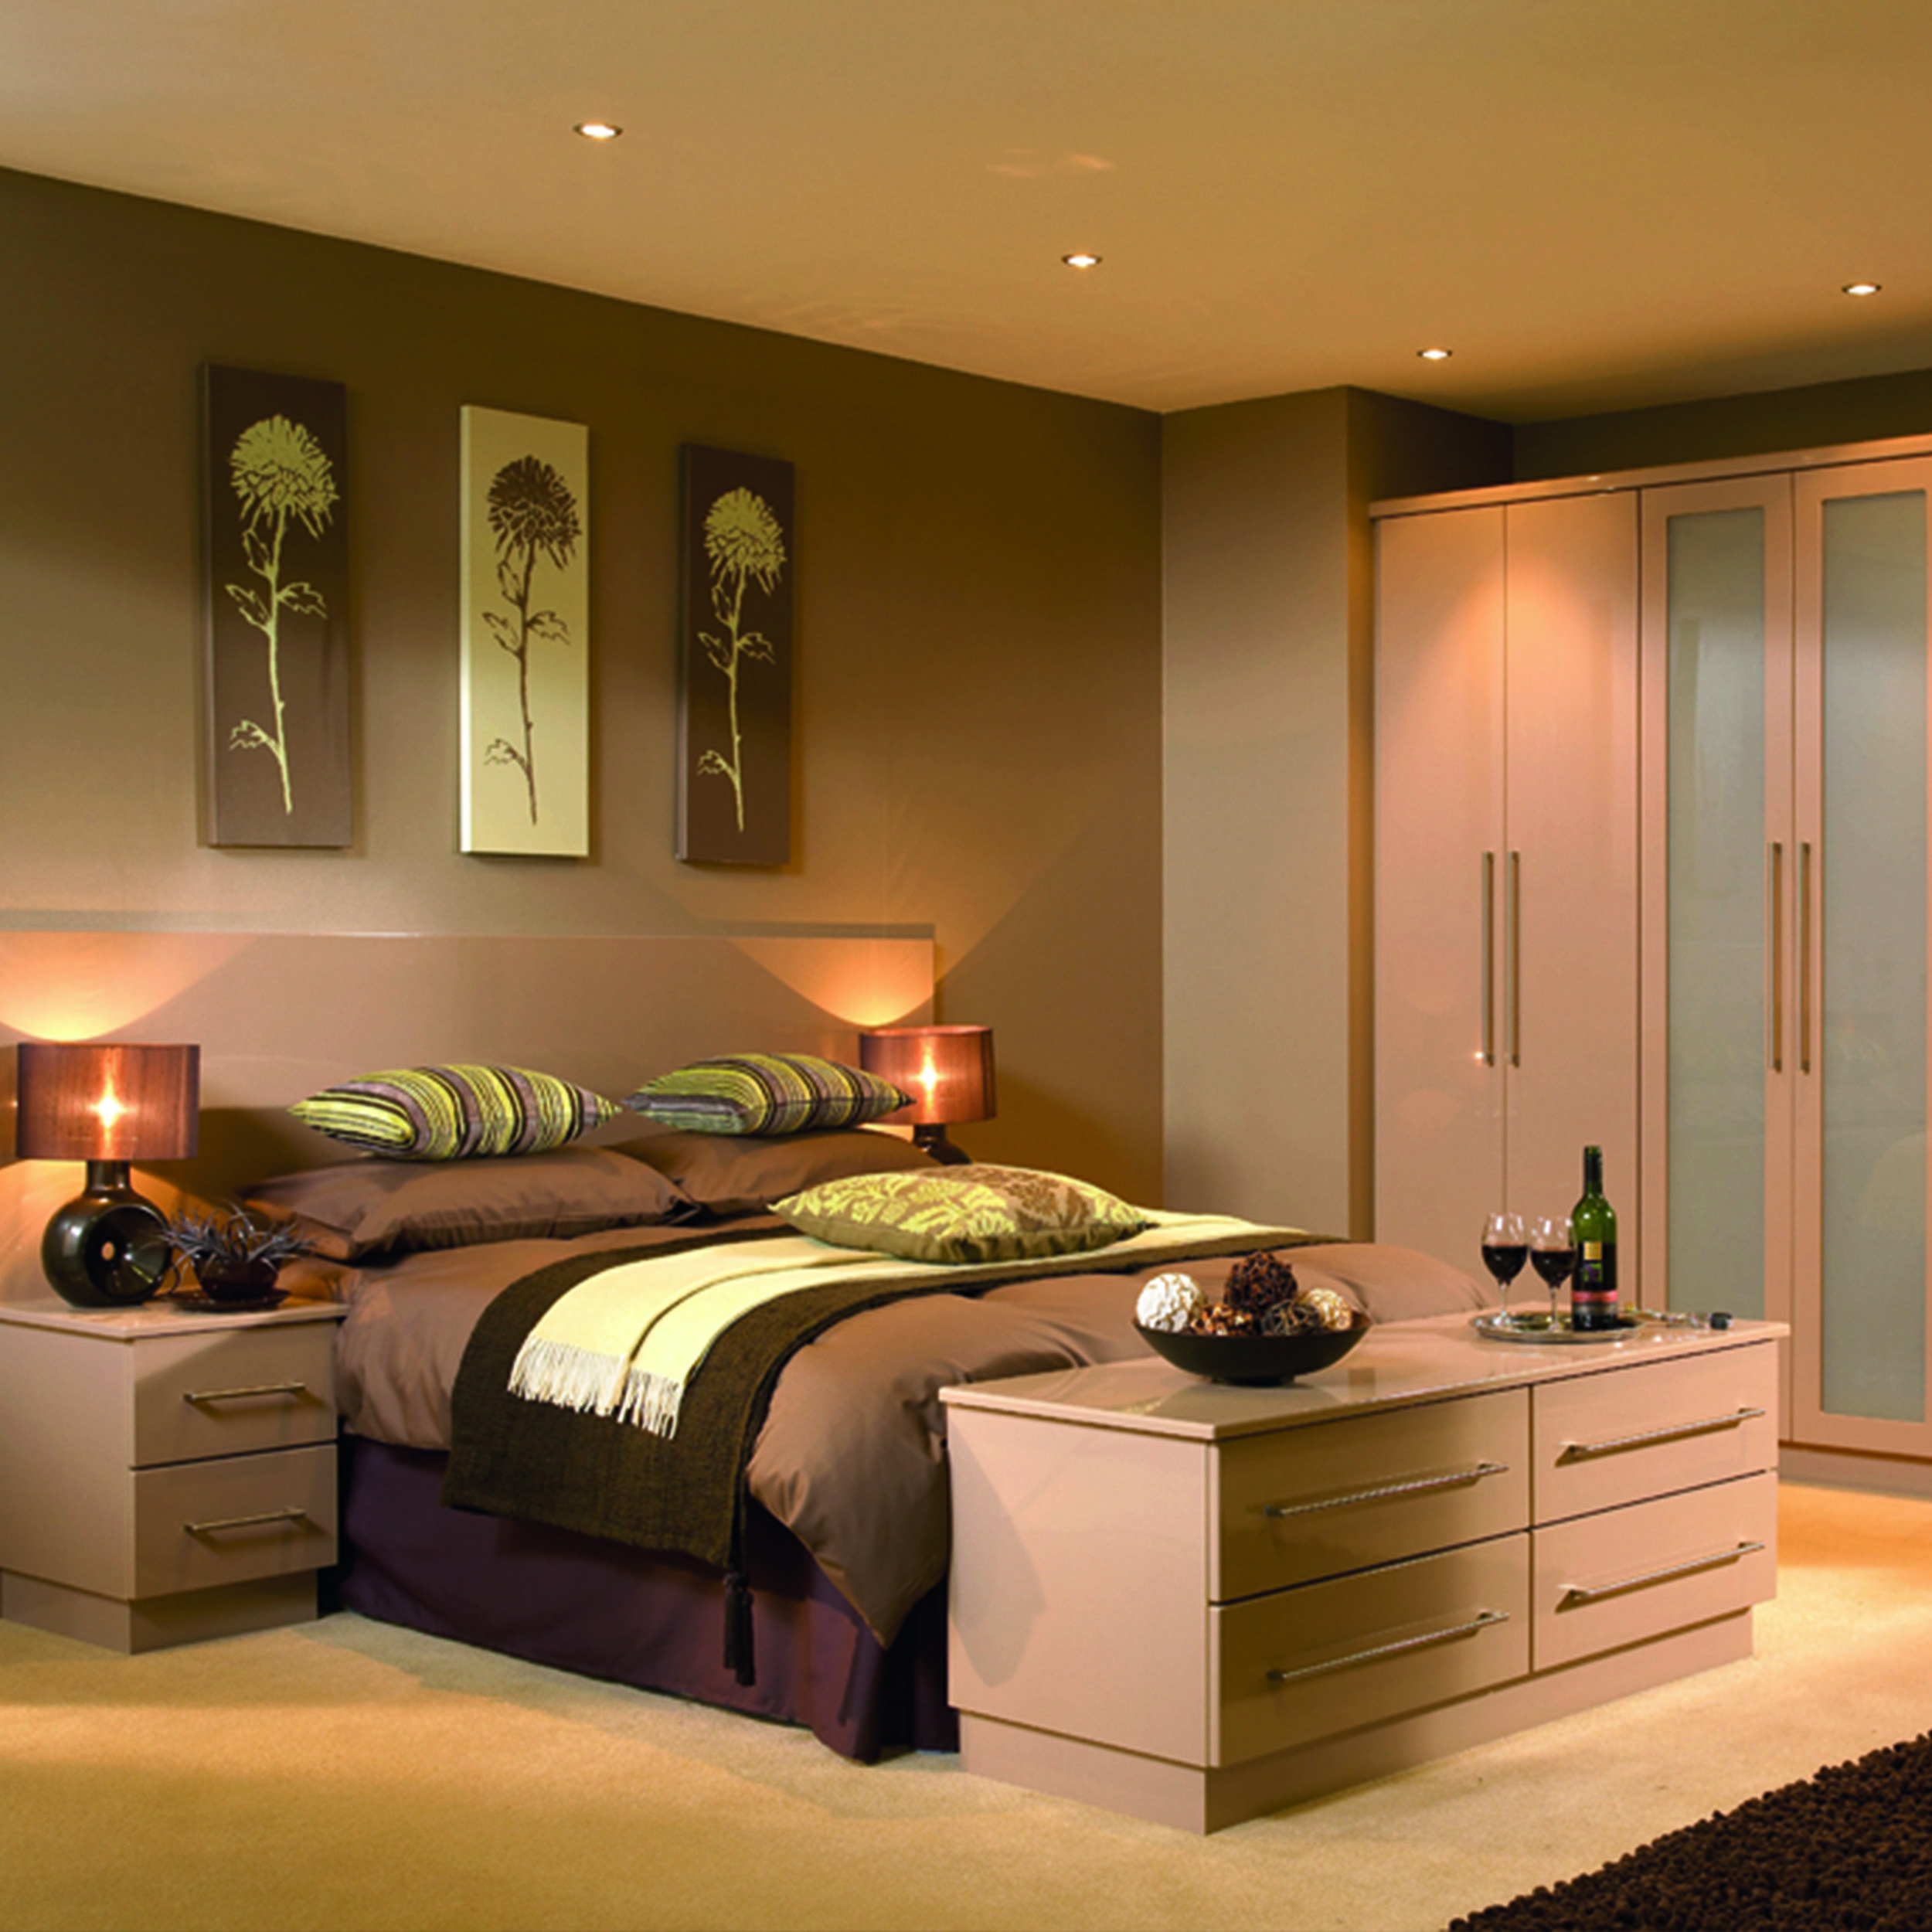 BEDROOMS - We will work with you to design your dream bedroom, utilising your space to provide you with maximum storage. We are constantly updating our accessories with all the current products on the market to ensure we can always accommodate your needs, making your bedroom both beautiful and practical.